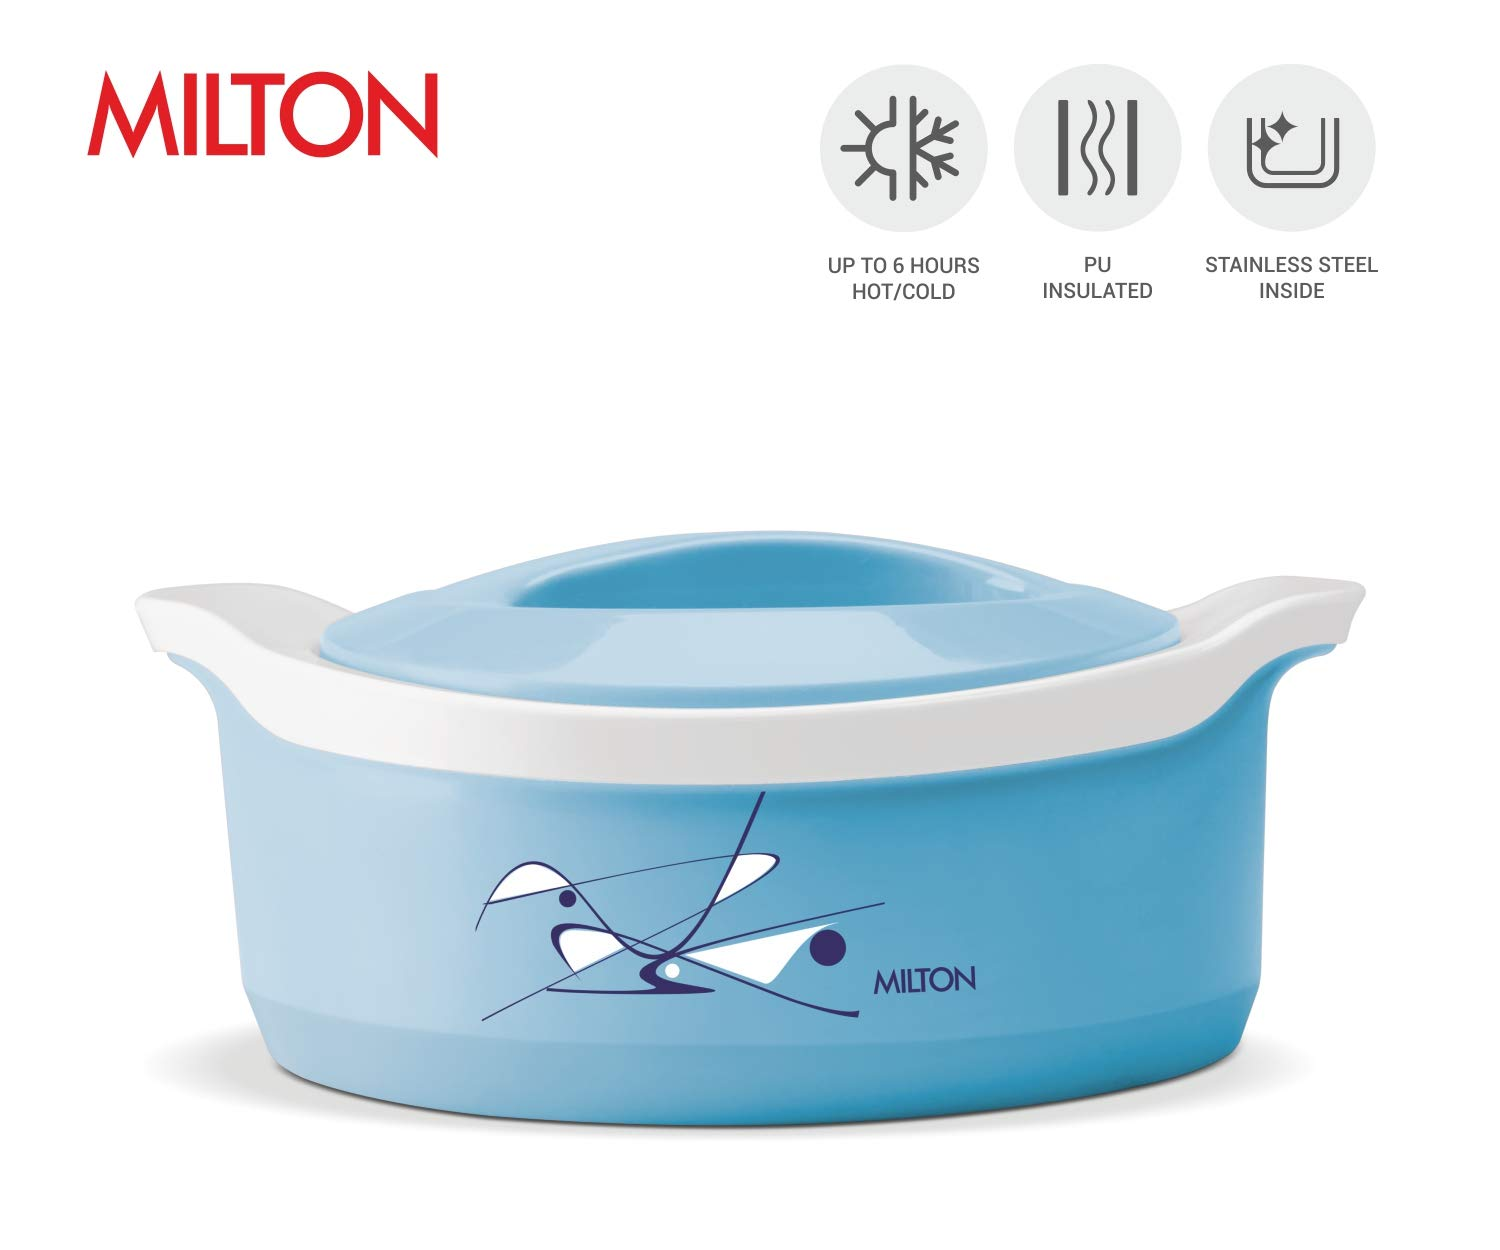 Yellow 110 Ounce Milton Marvel Insulated Hot Pot Serving Bowl with Lid Hot//Cold Upto 4-6 Hours Hamilton Housewares P Ltd.